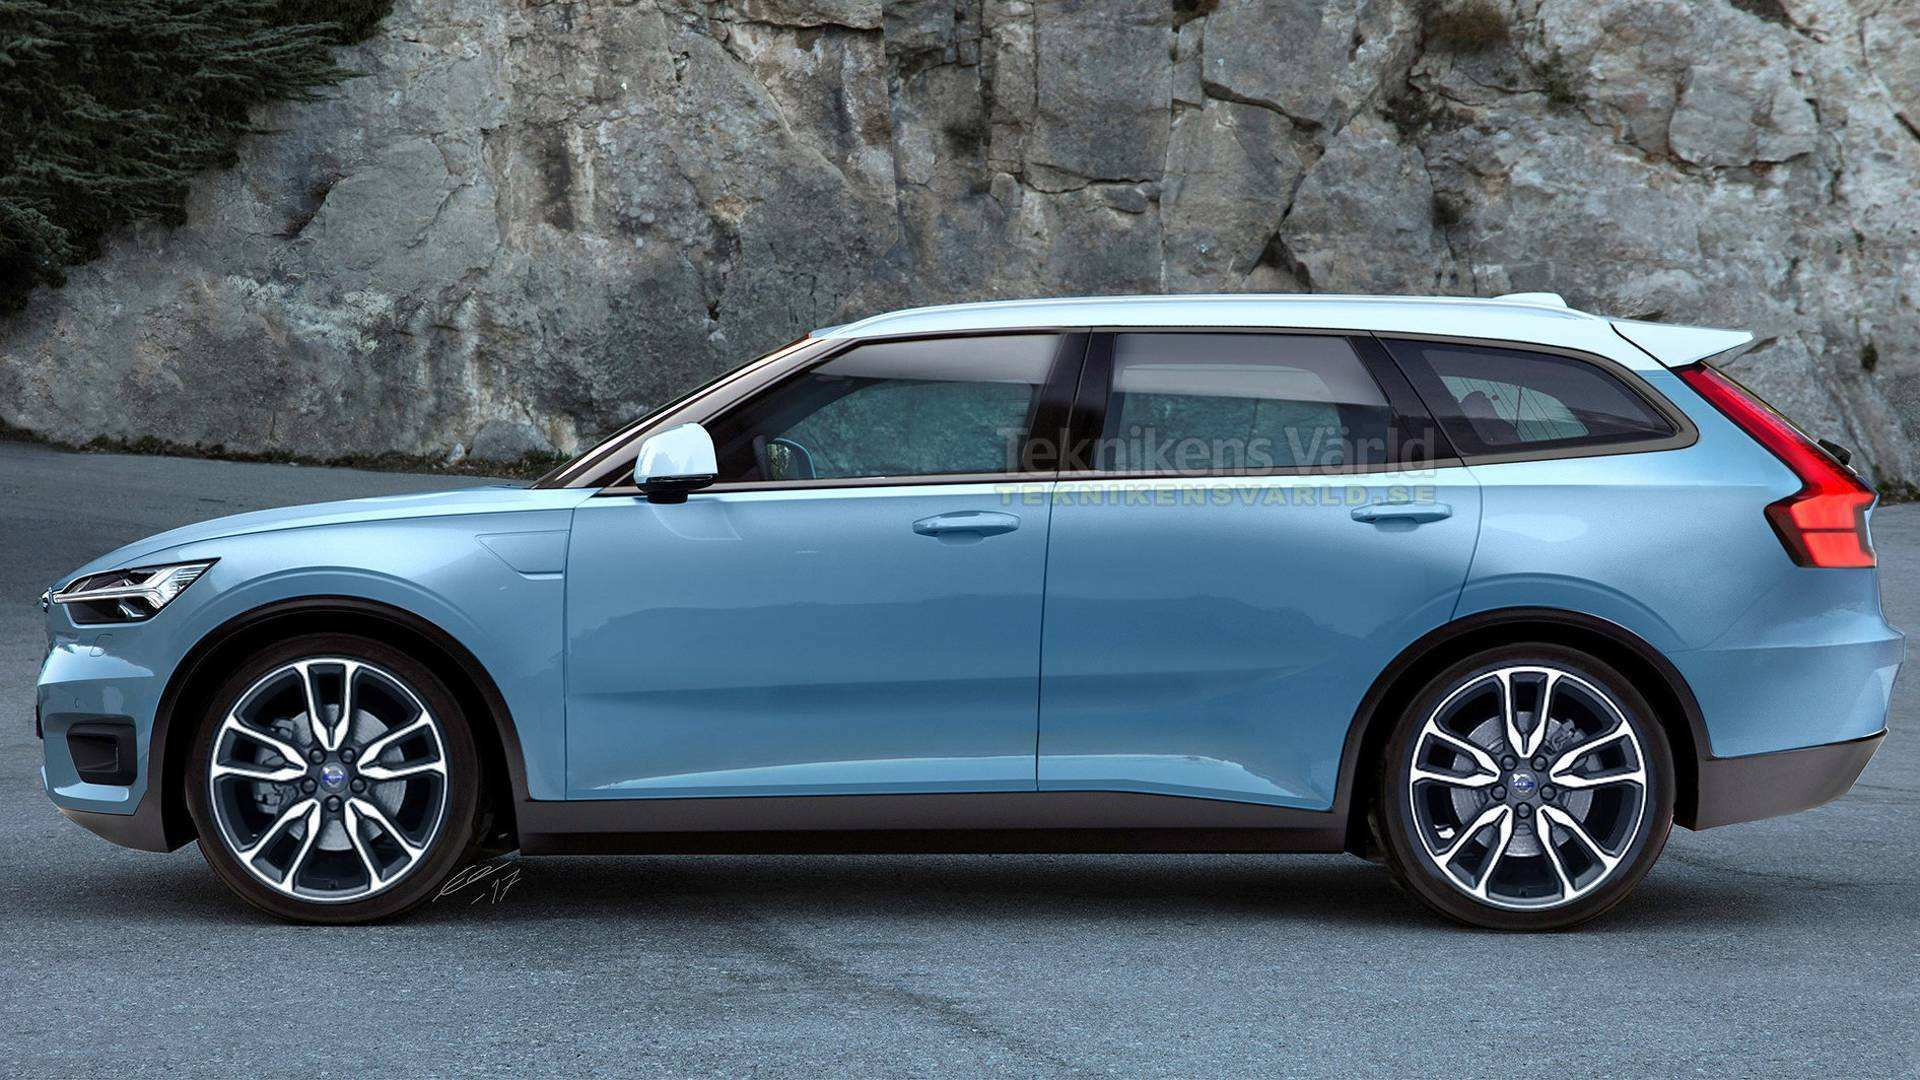 81 A Volvo New V40 2020 Price And Release Date